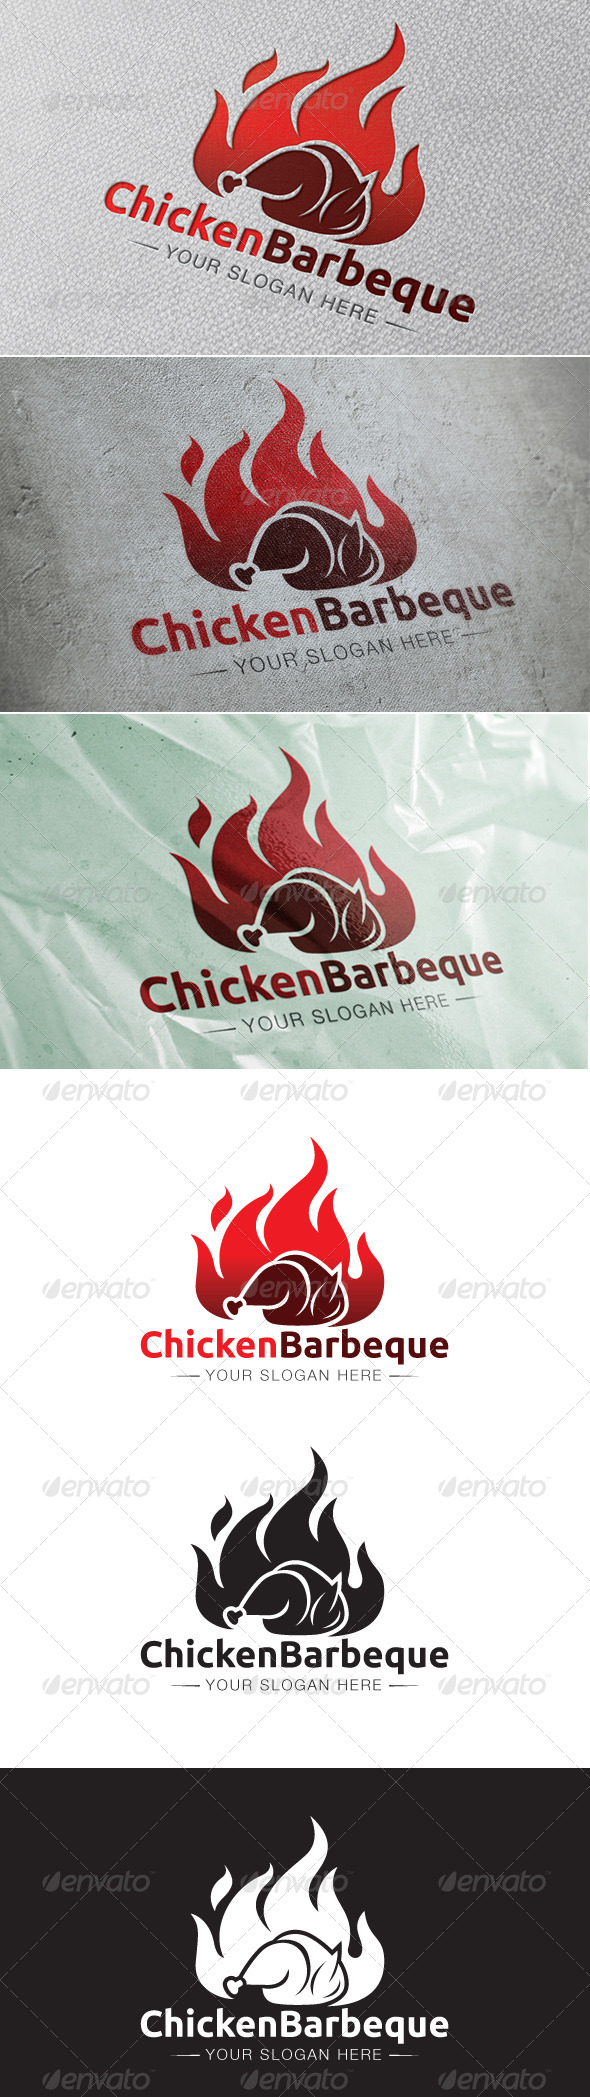 GraphicRiver Chicken Barbeque Logo Template 6563503